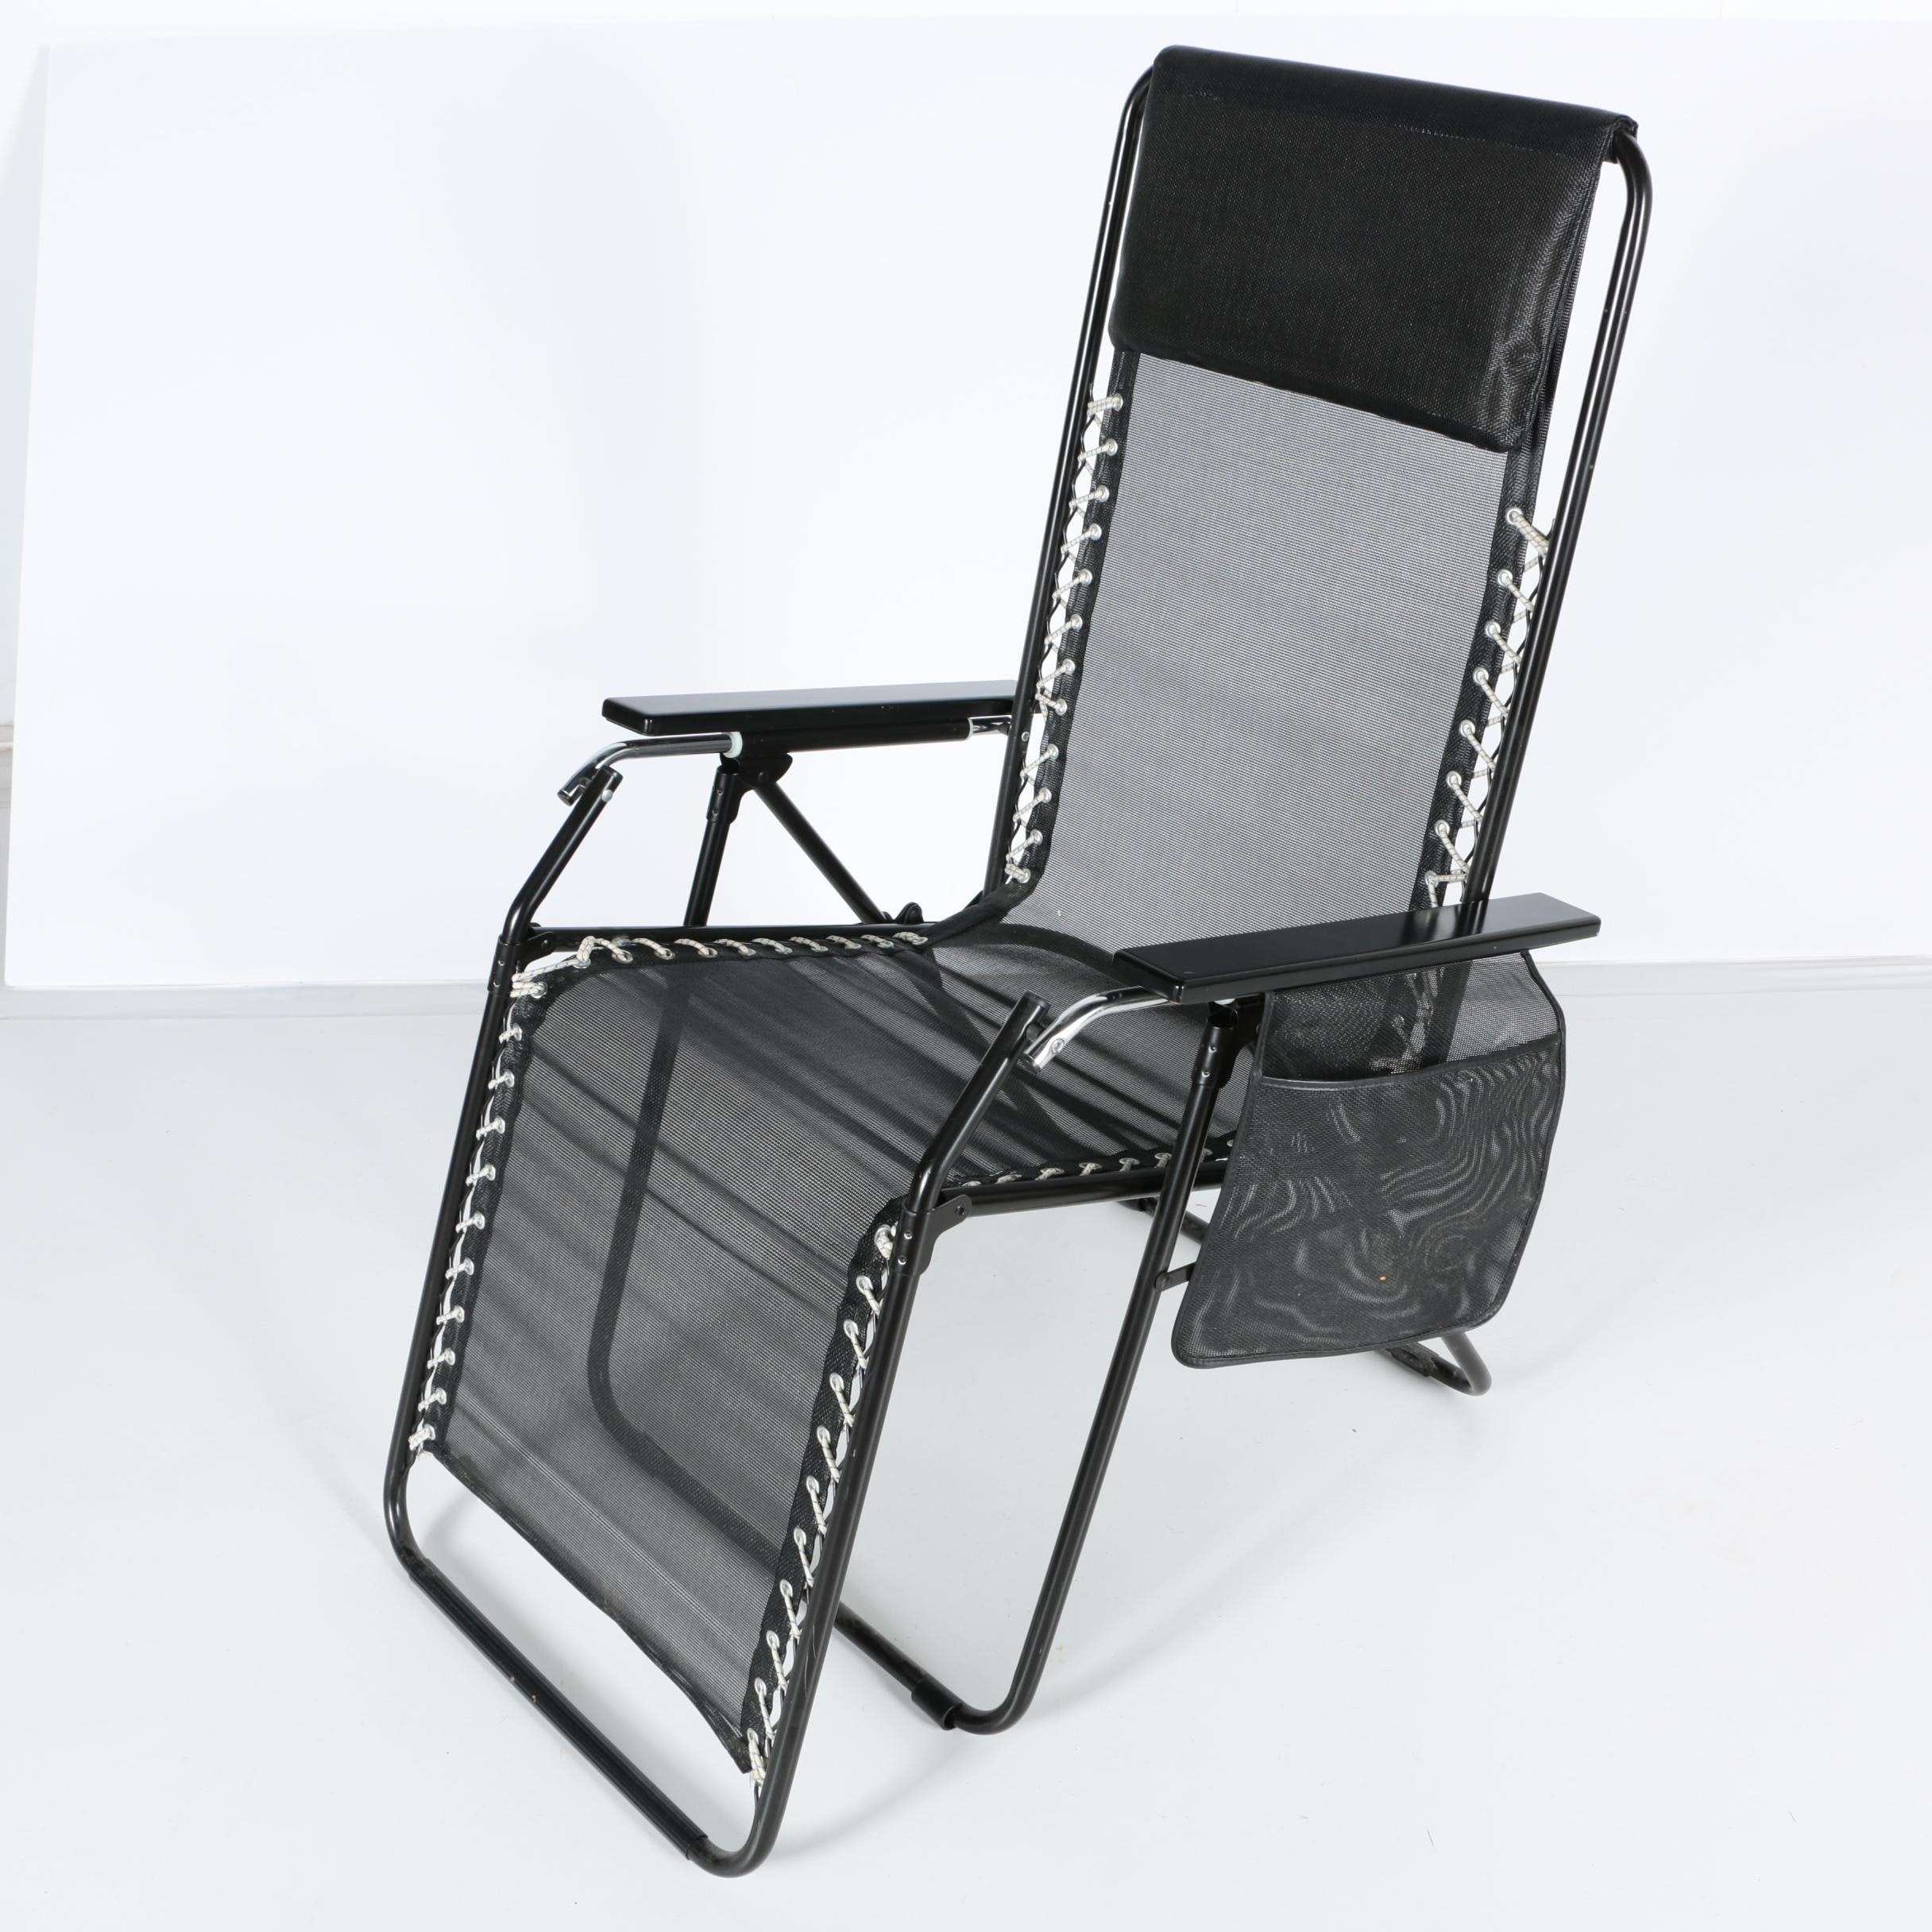 Folding Chaise Lounge Chair by Batyline